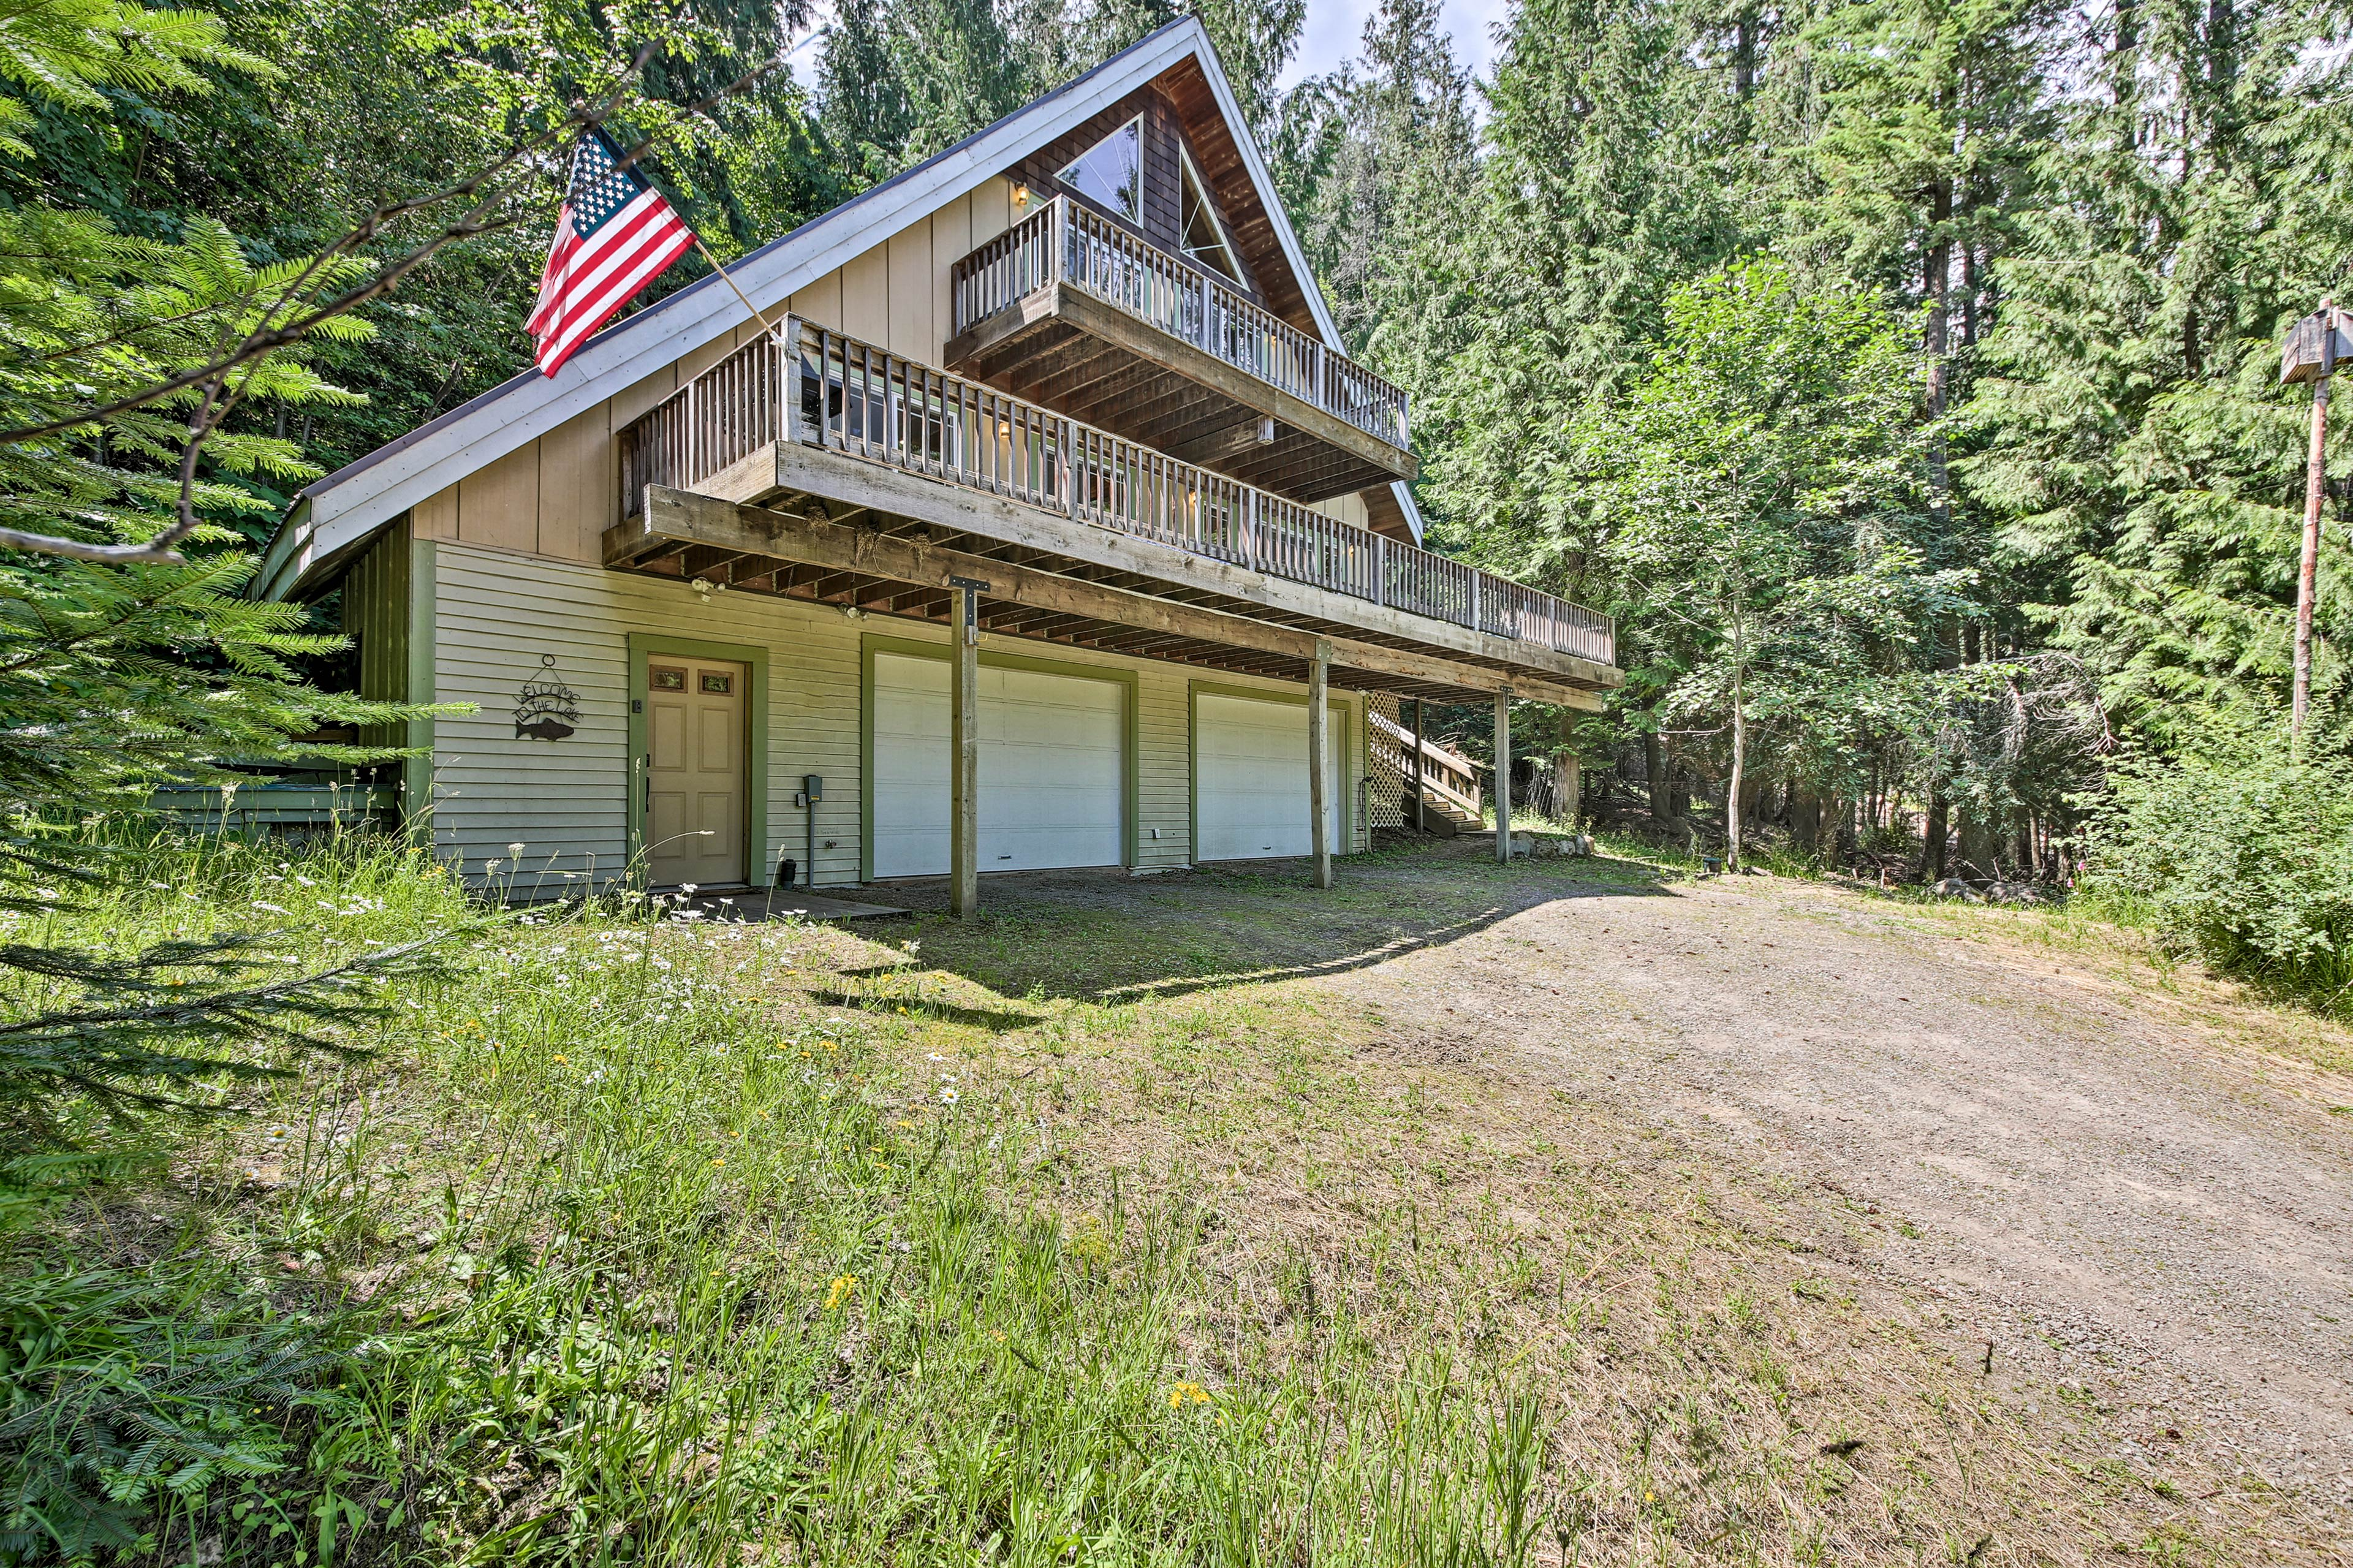 The 4-bed, 3-bath vacation rental home boasts accommodations for 8 guests.